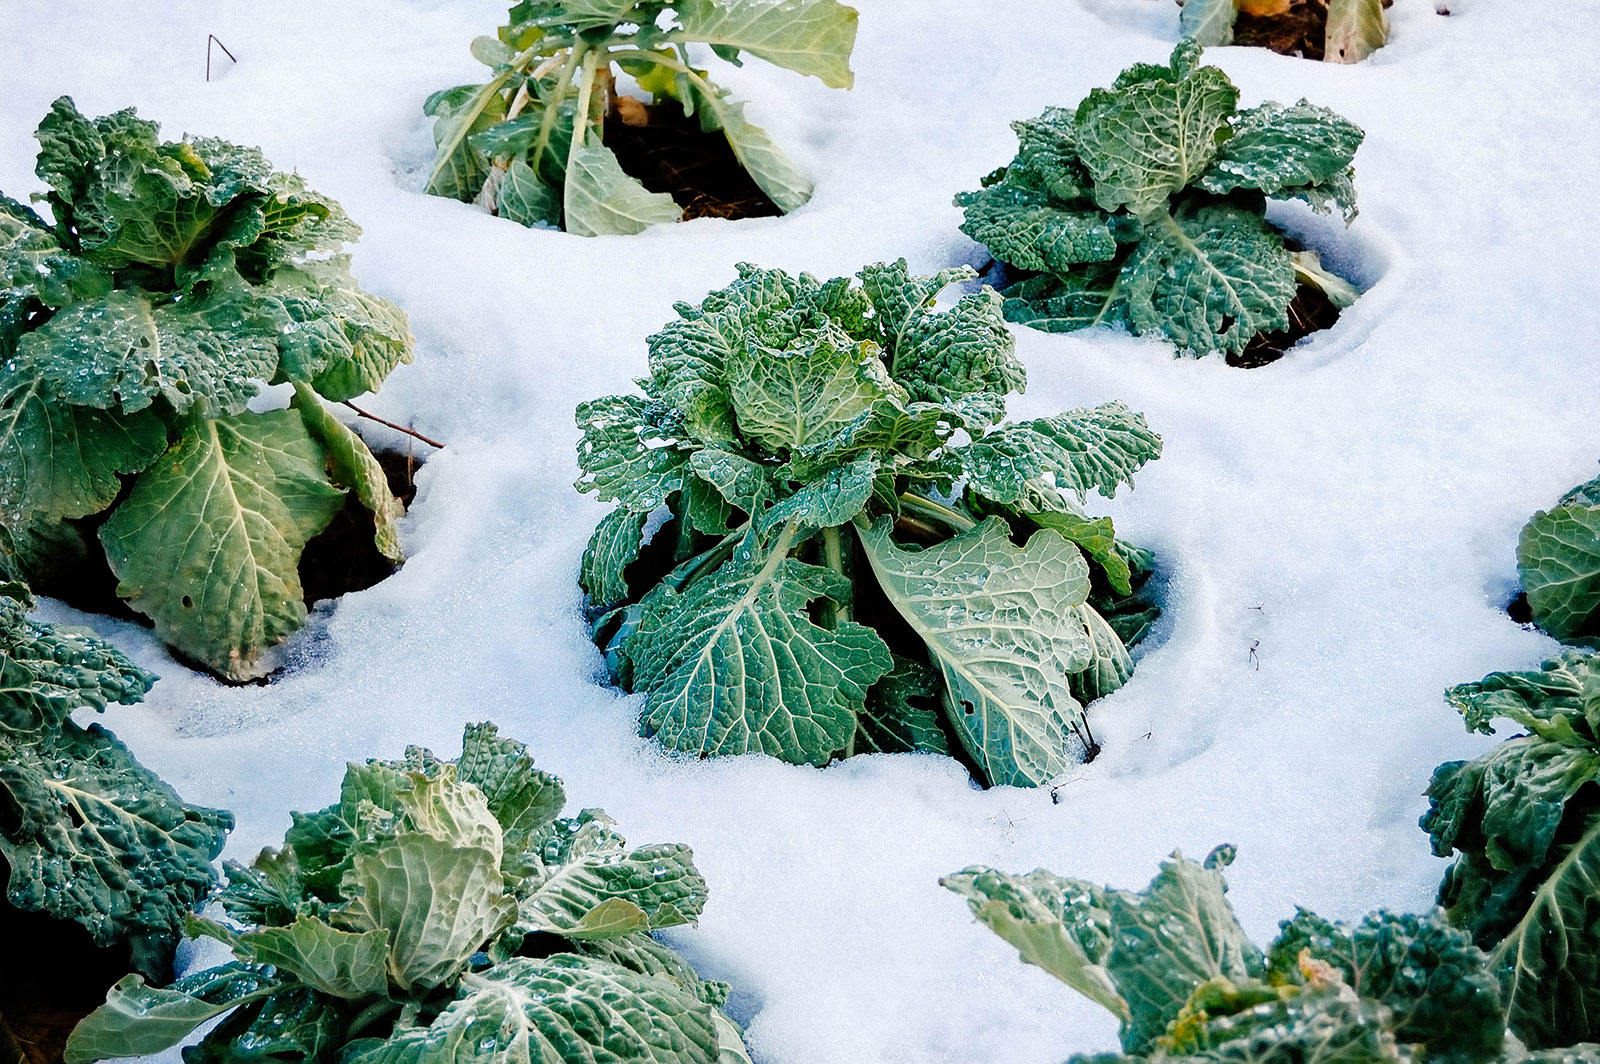 Cabbage plants surrounded by a blanket of snow